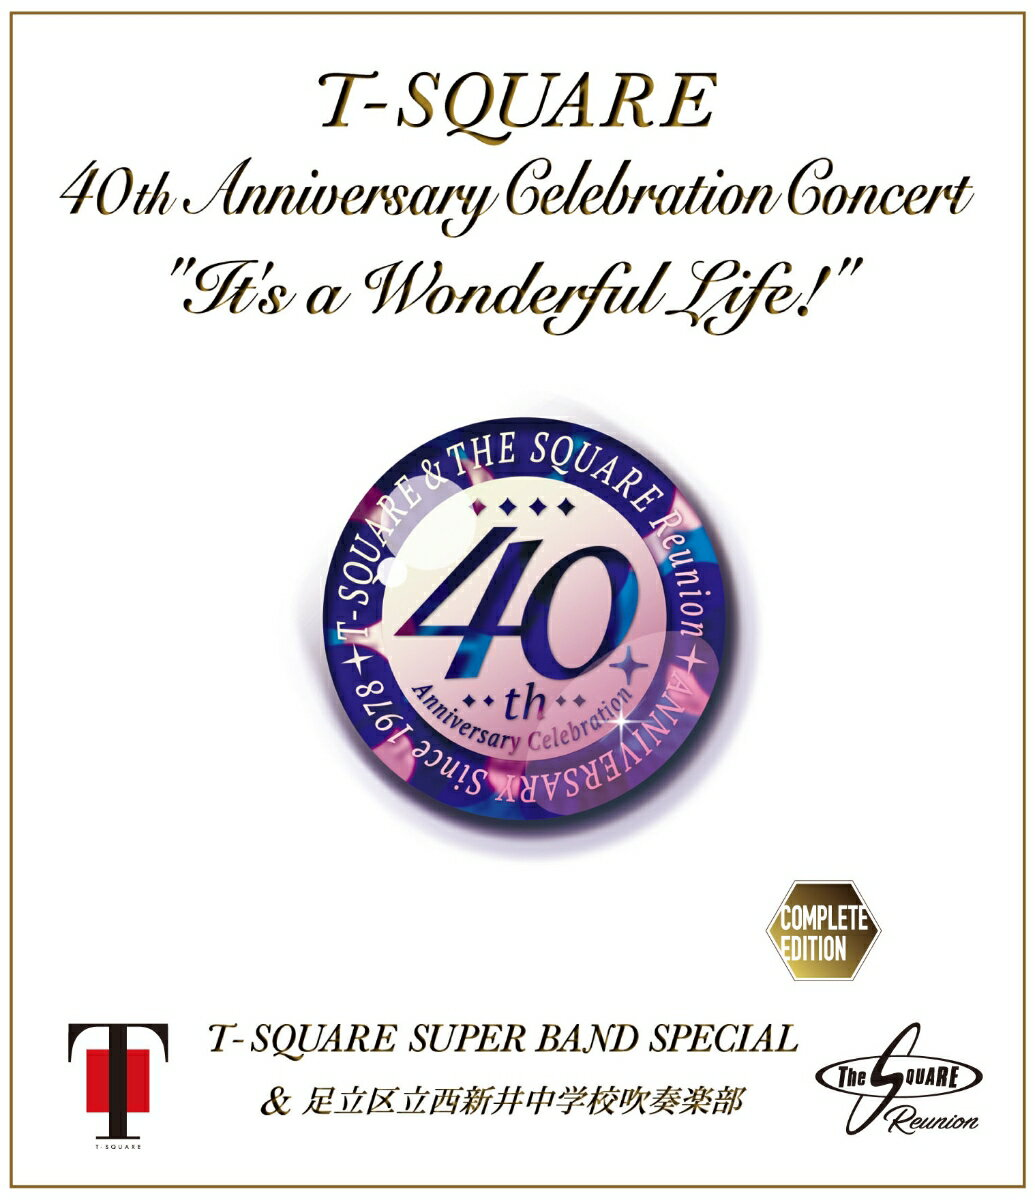 """40th Anniversary Celebration Concert """"It's a Wonderful Life!"""" Complete Edition【Blu-ray】画像"""